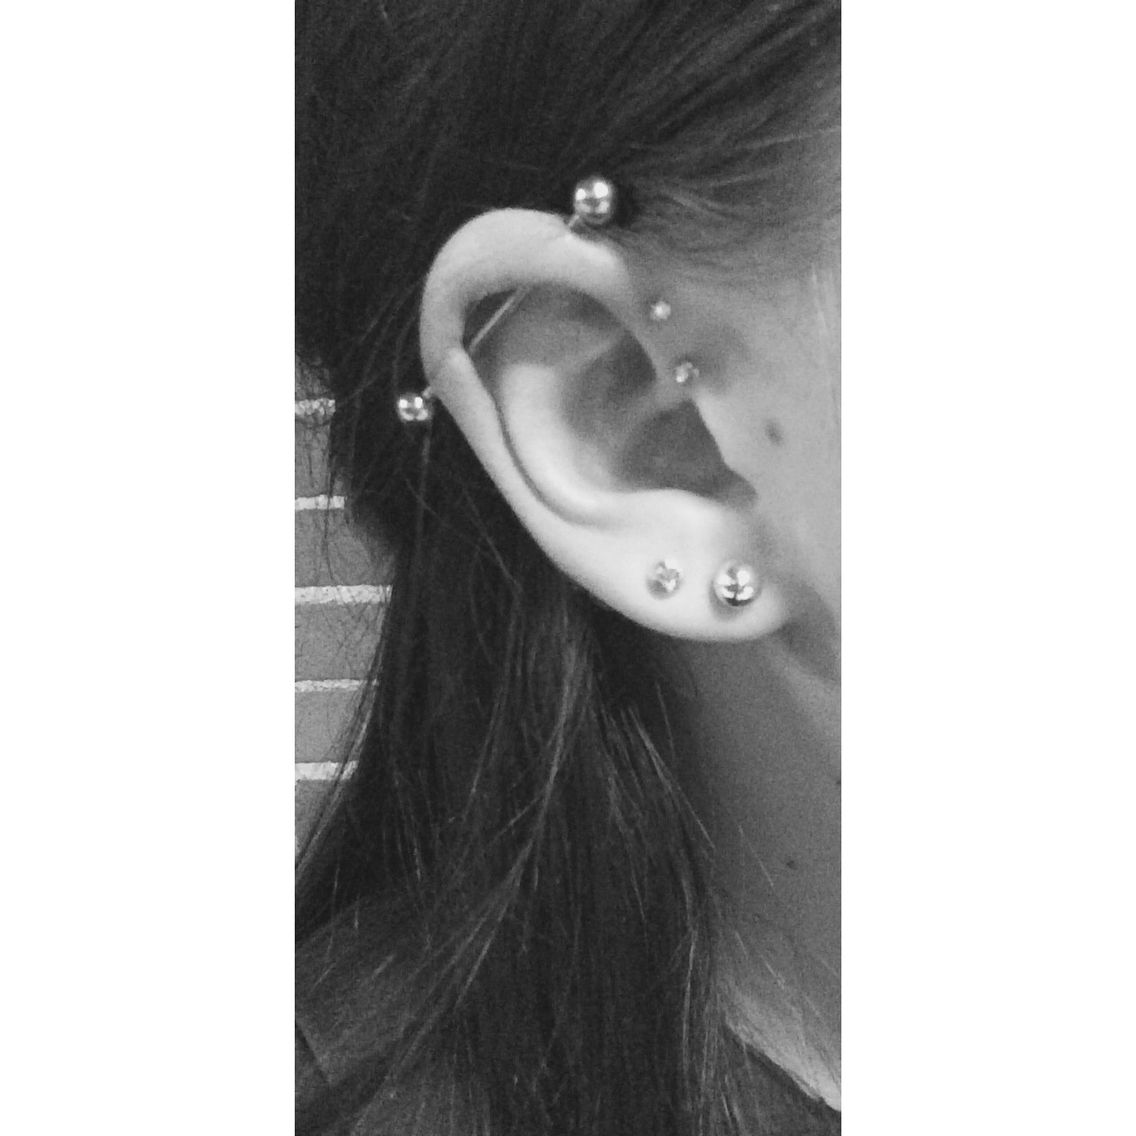 Industrial Piercing With Double Forward Helix Earings Piercings Double Forward Helix Piercing